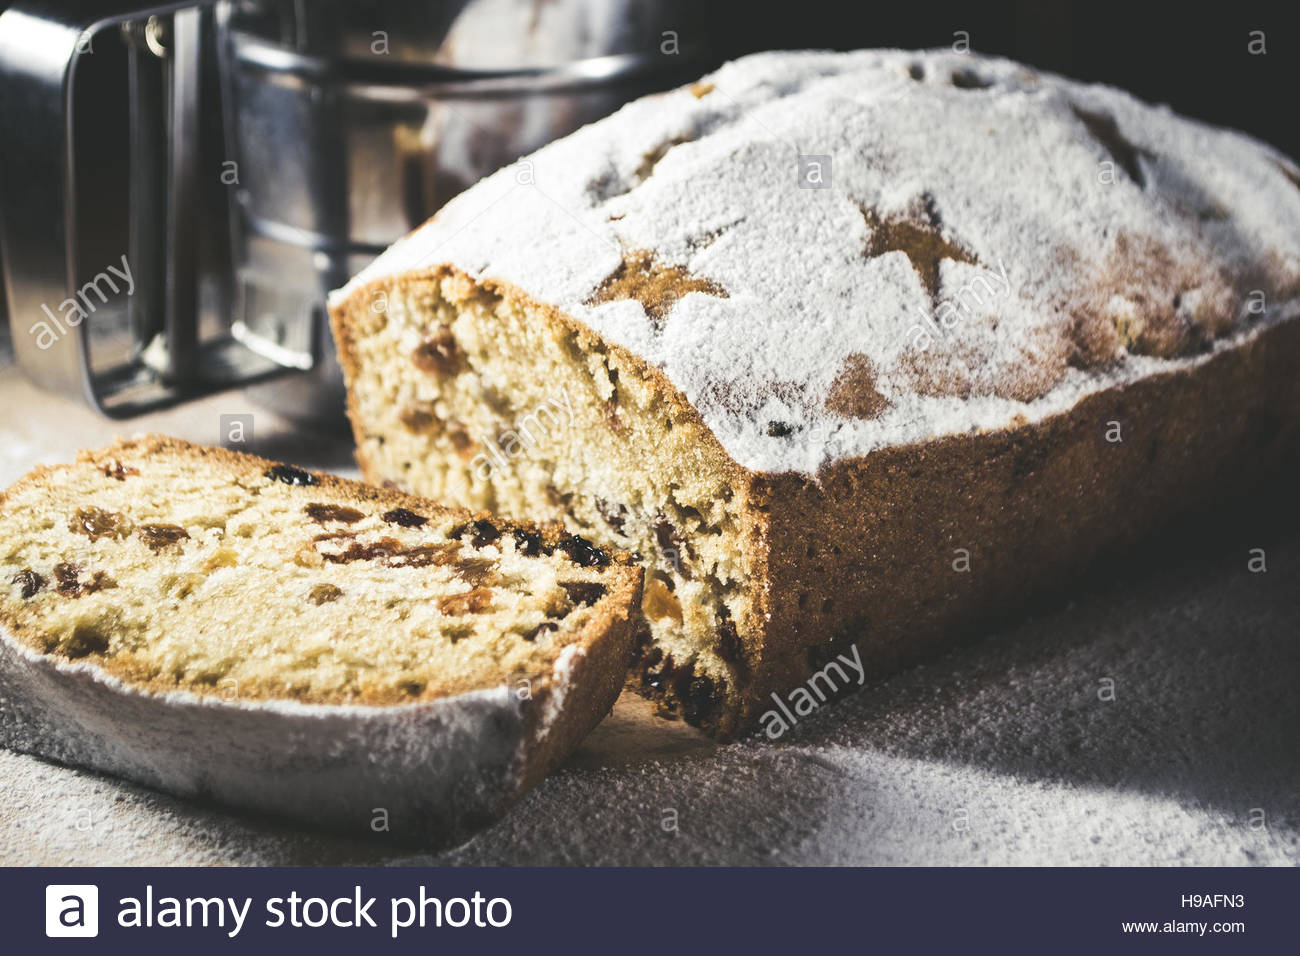 The cake in powdered sugar on the table - Stock Image